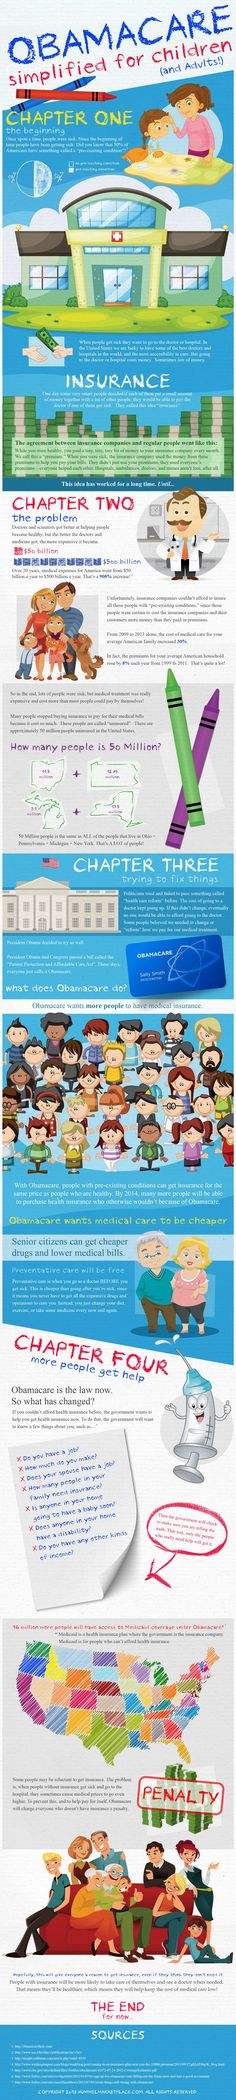 Obamacare SImplified For Childeren